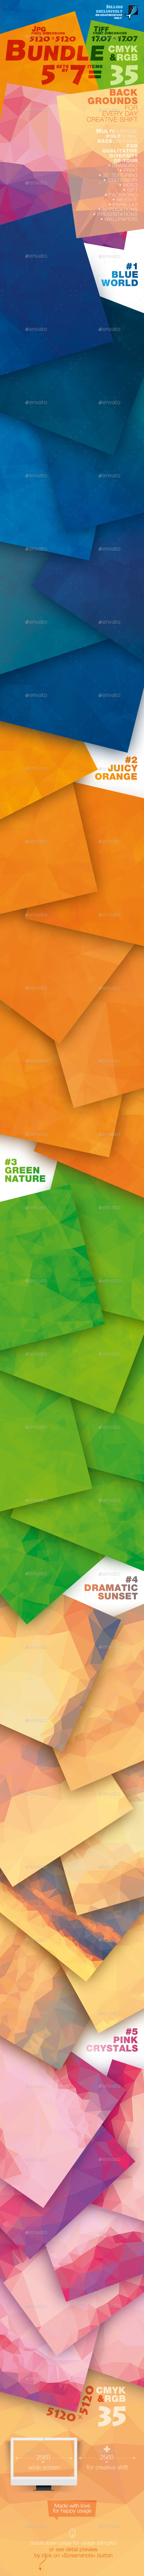 35 Pro Colorful Backgrounds Bundle in CMYK and RGB - Abstract Backgrounds